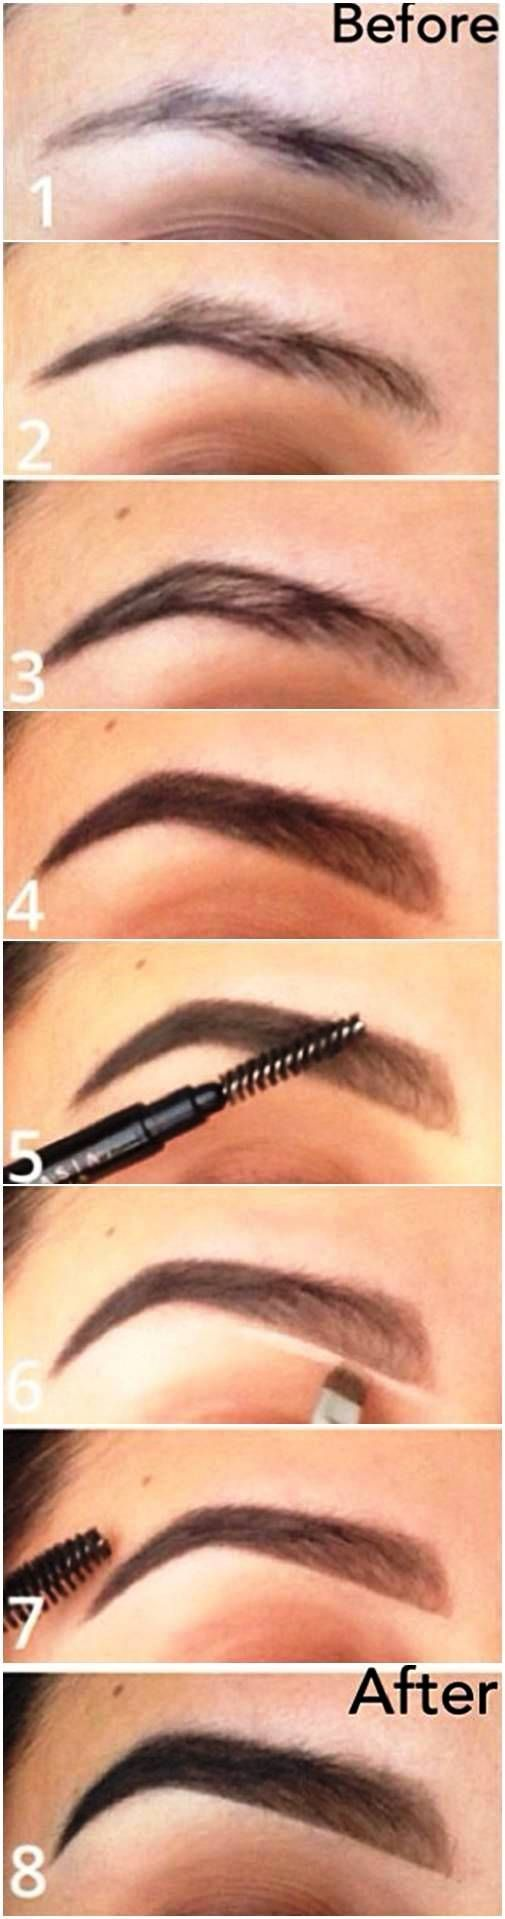 How To Get The Perfect Bomb Brows For Beginners Pretty Designs